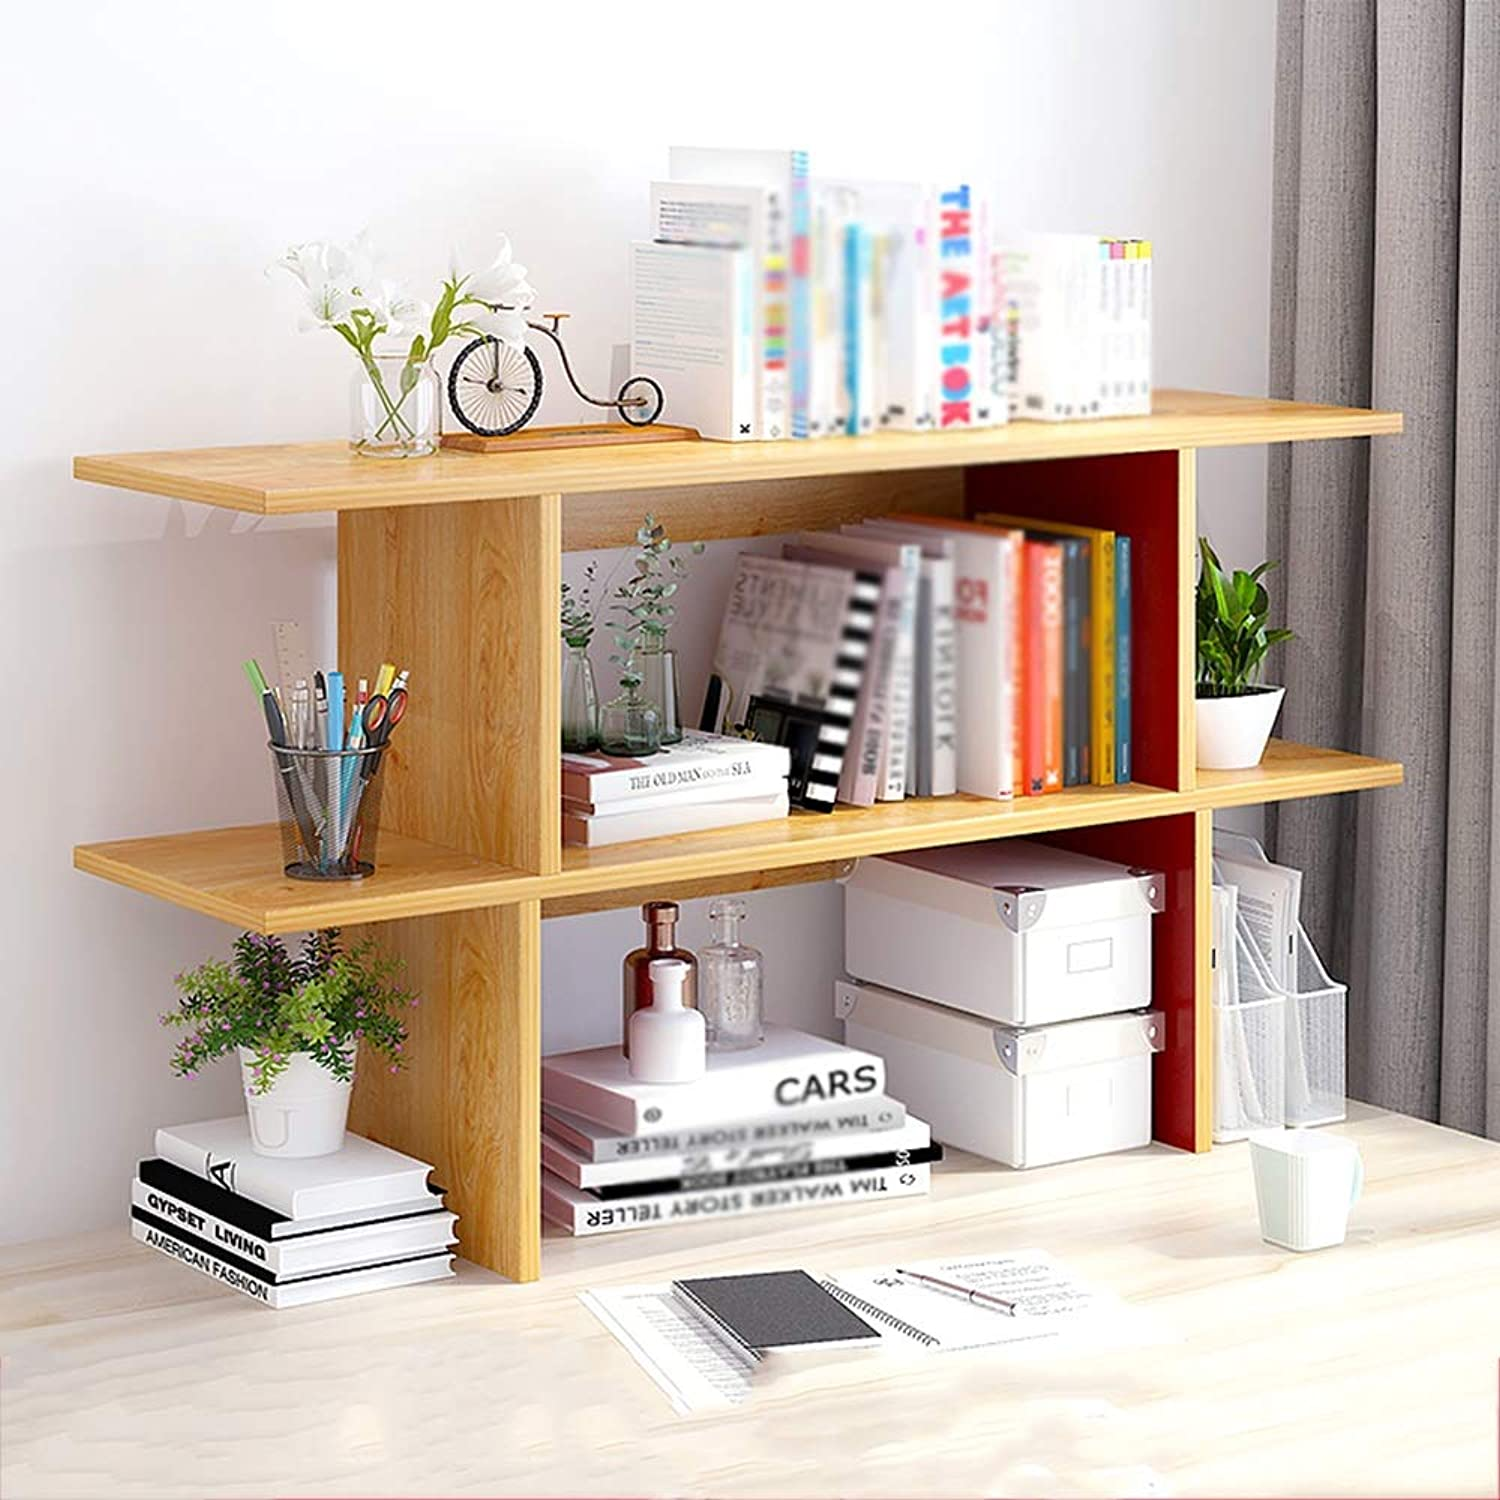 CL Simple Modern Desktop Solid Wood Shelf Multi-Function Bookshelf (Three Sizes to Choose from) Bookshelf (Size   C-110cm)